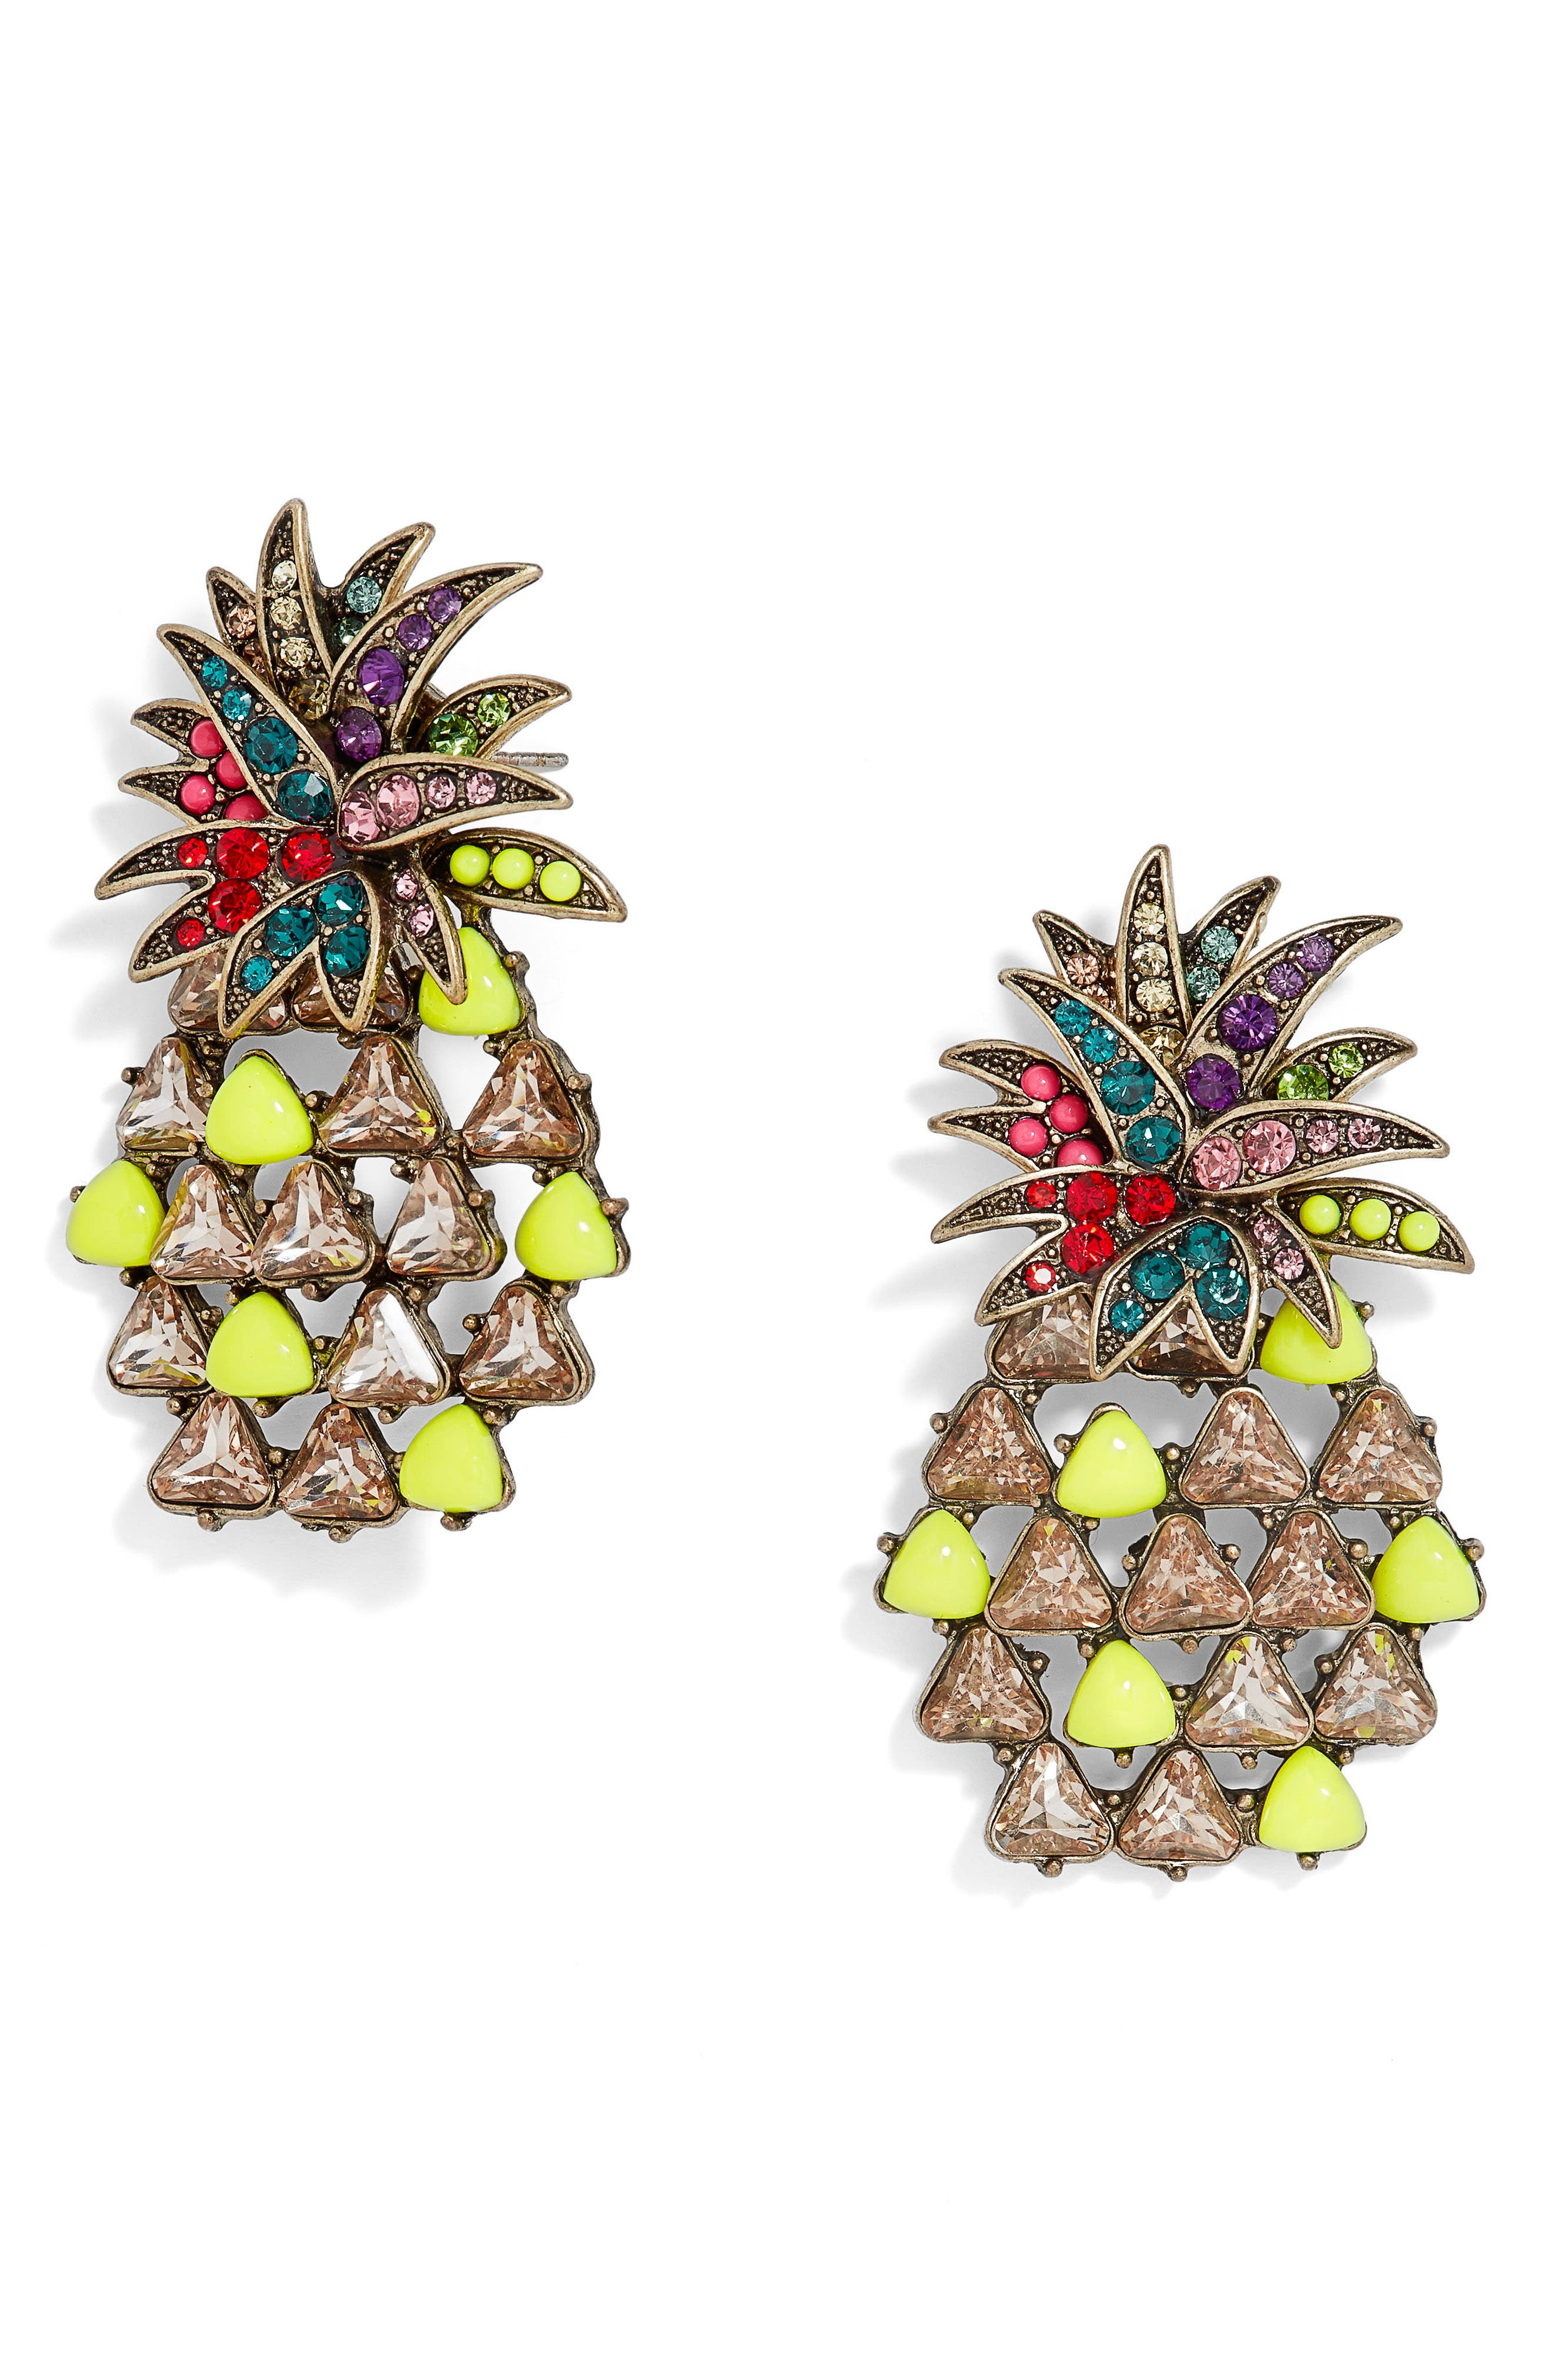 Pineapple Pop Large Stone Stud Earrings,                             Main thumbnail 1, color,                             Neon Yellow